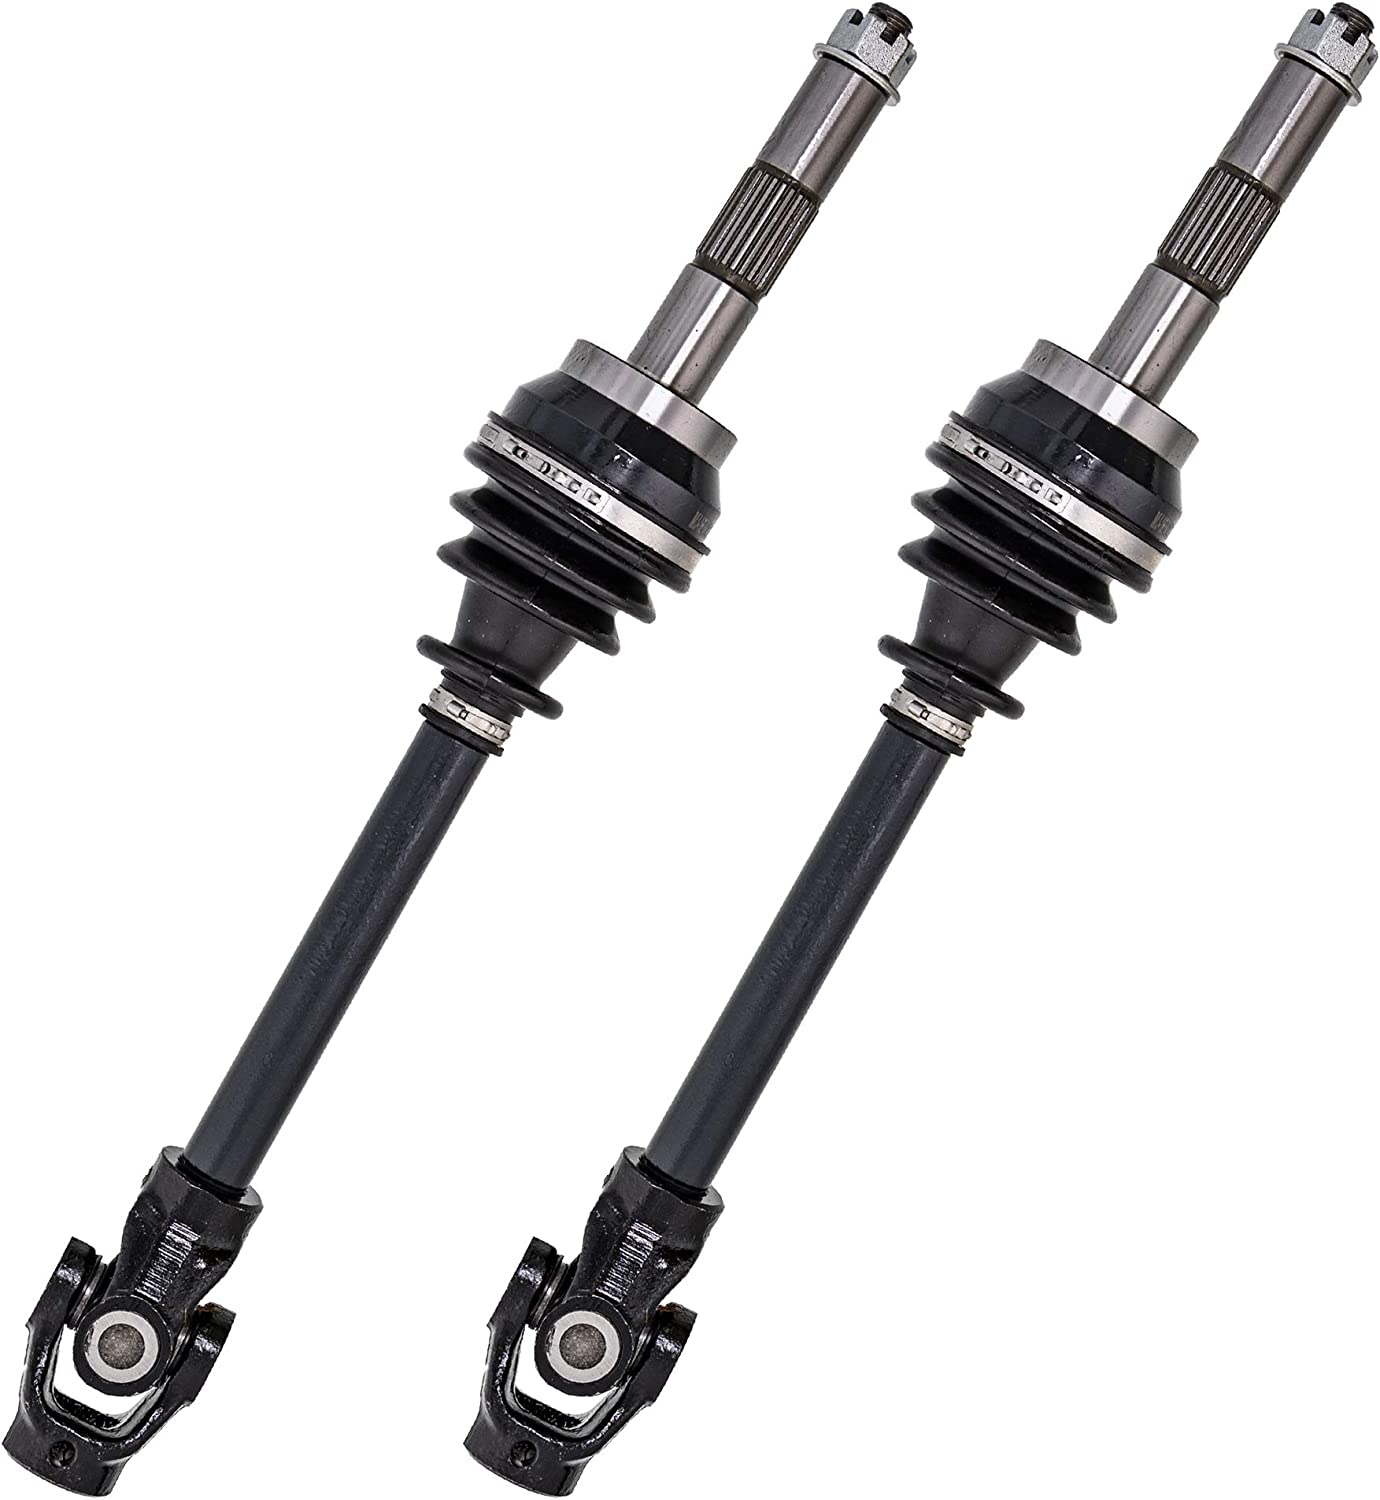 NICHE High Strength Front and Rear Left Right Drive Shaft Axle Kit for 2004-2005 Polaris Sportsman 400 500 1380215